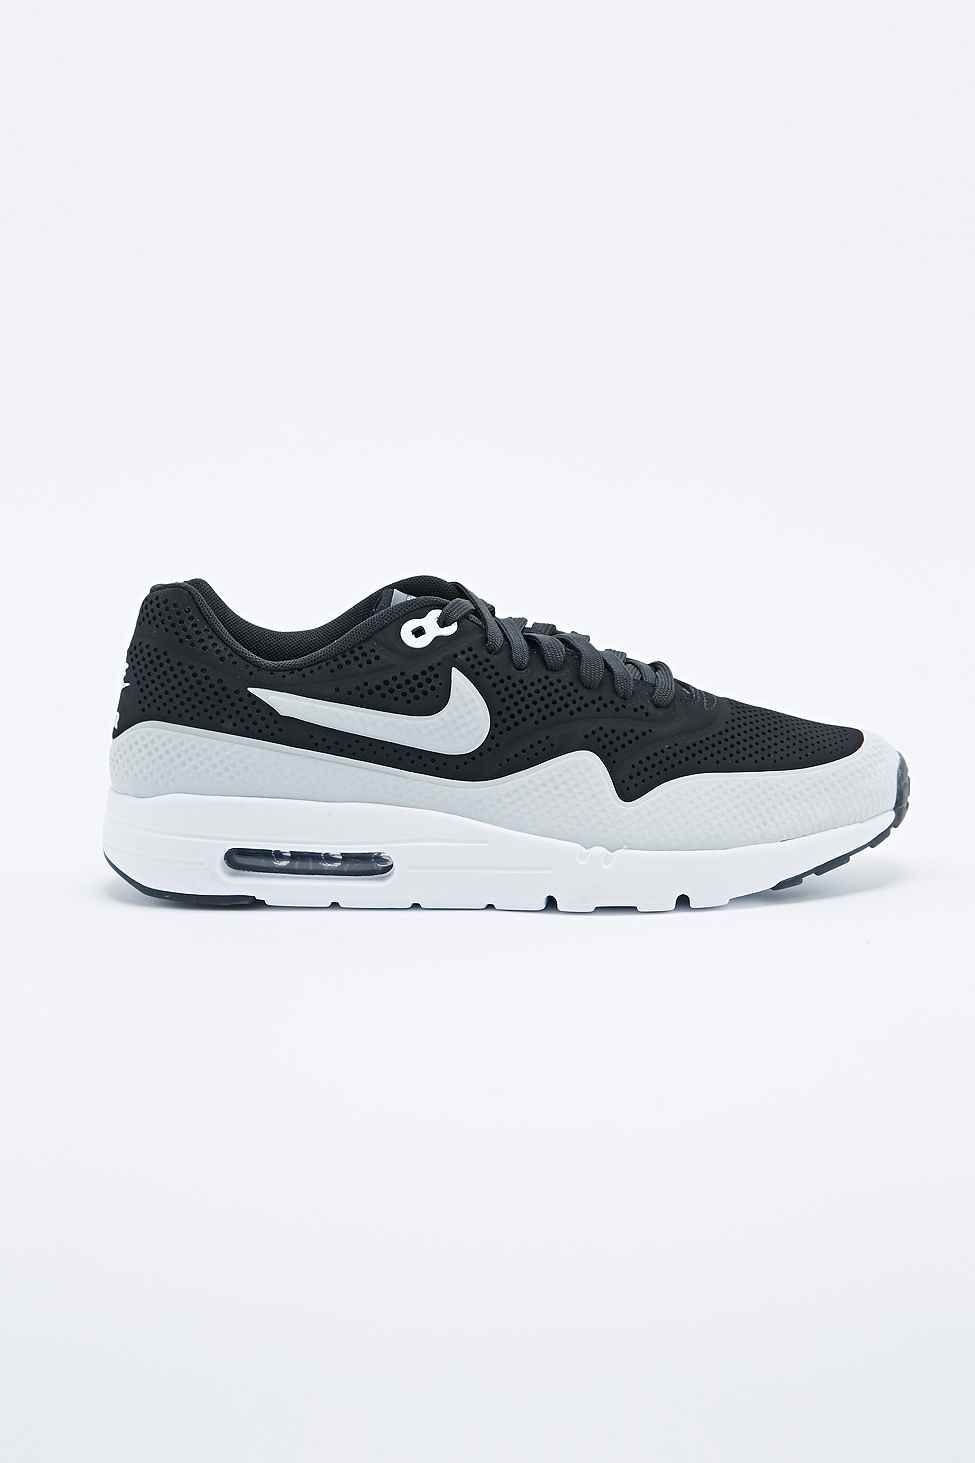 brand new 667e2 b3f60 Nike - Baskets Air Max 1 Ultra Moire noires - Urban Outfitters